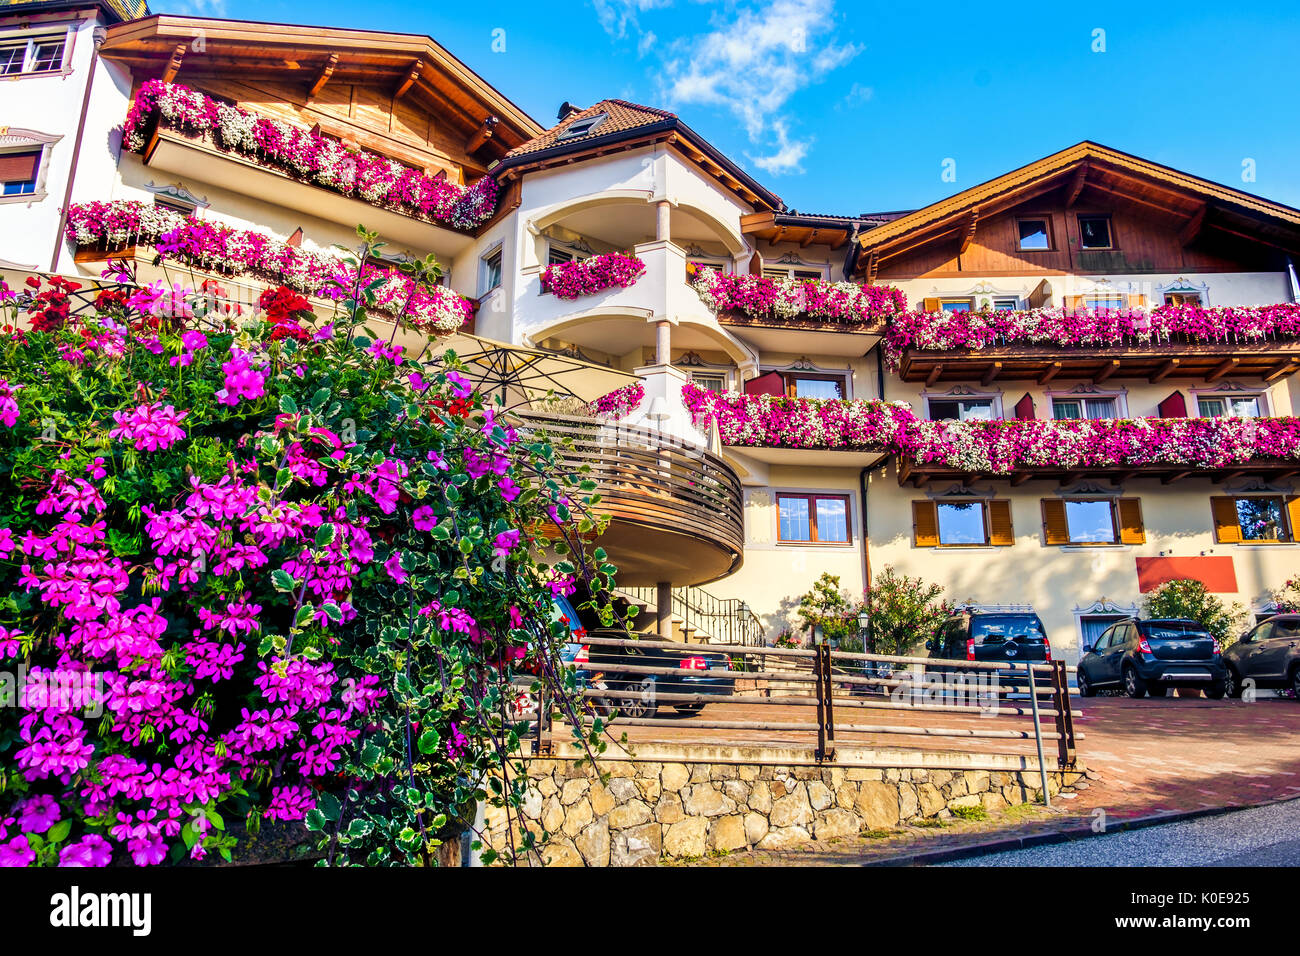 chalet purple flowers colorful summer south tyrol accomodation - Stock Image